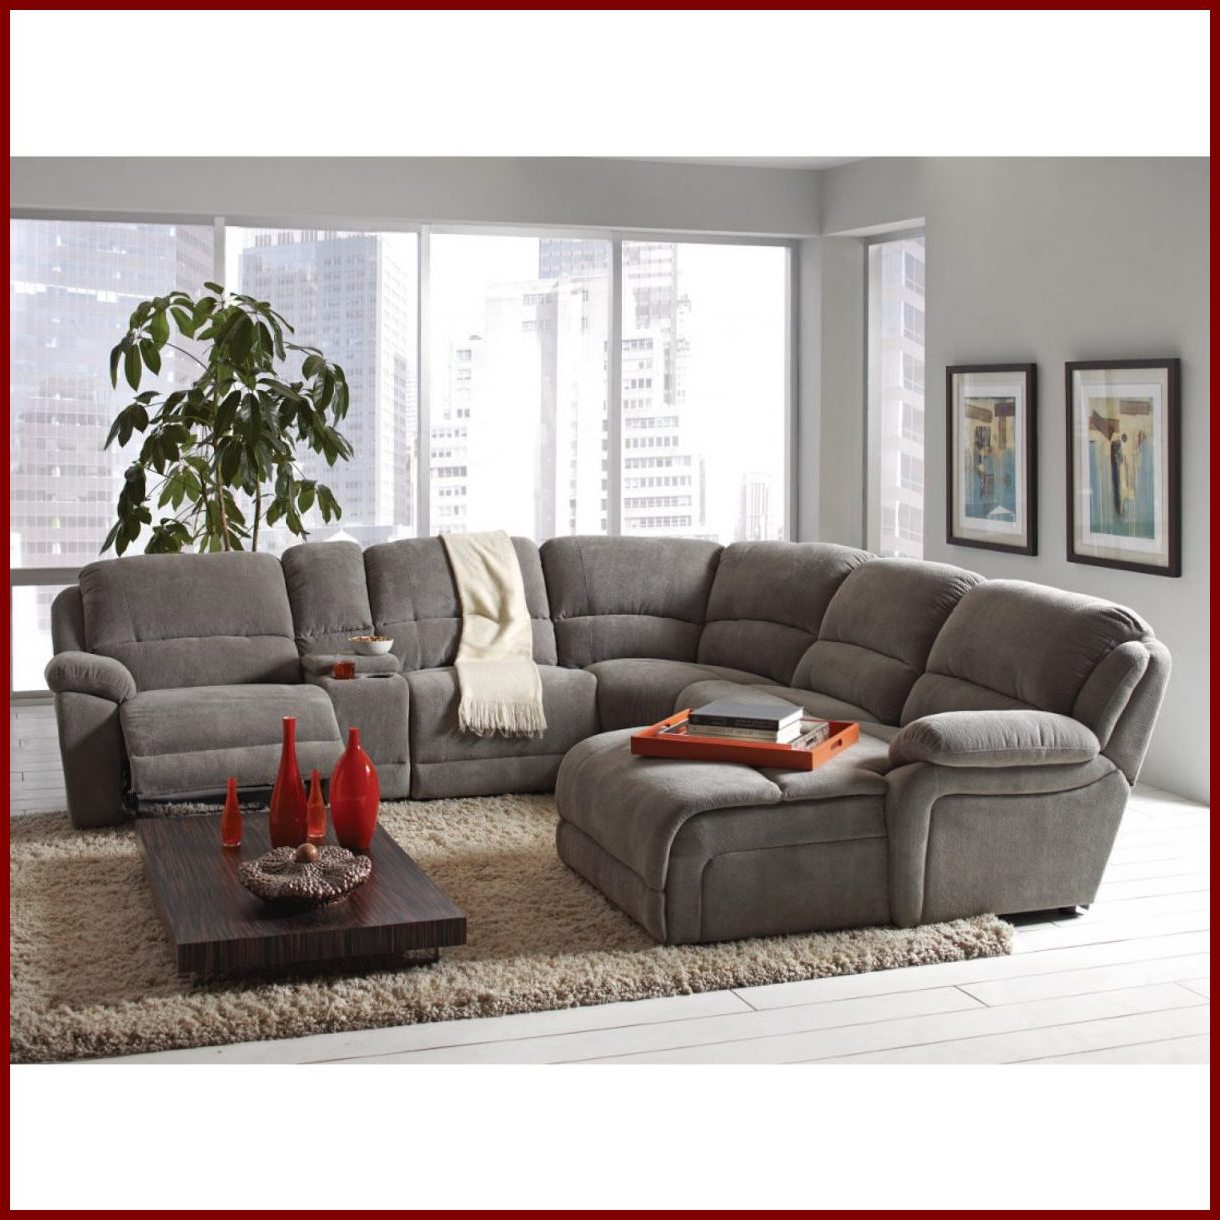 Baci Living Room Intended For Most Current Denali Light Grey 6 Piece Reclining Sectionals With 2 Power Headrests (View 12 of 20)